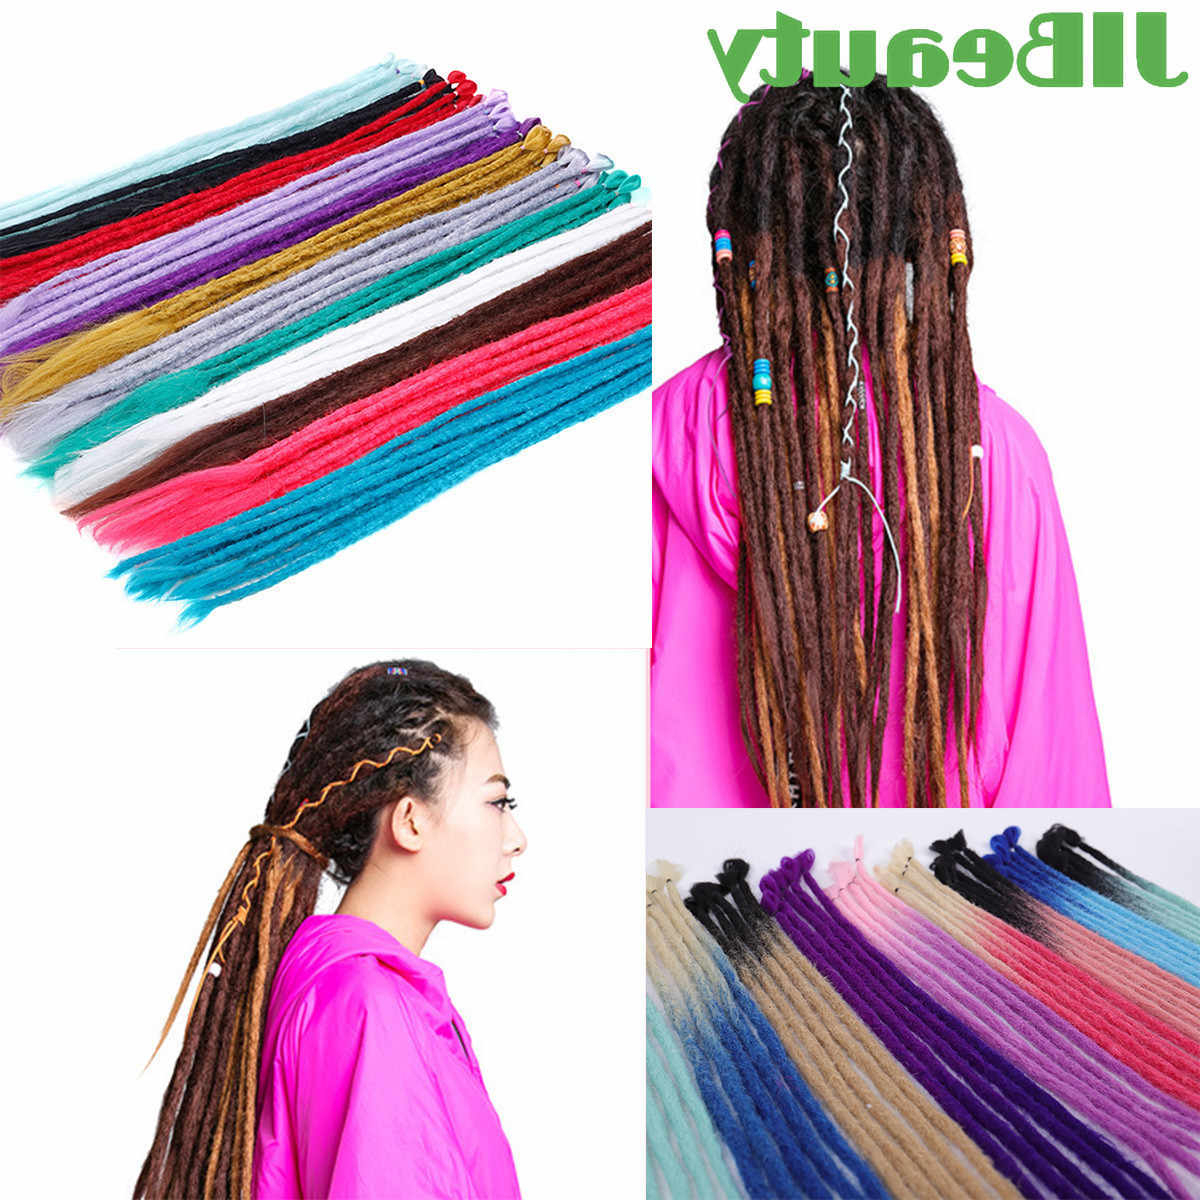 2020 Multicolored Extension Braid Hairstyles With Regard To Qianji Colorful Dreads 20 Inch Handmade Dreadlocks Extensions Fashion Reggae Hip Hop Synthetic Dreads Crochet Braiding Hair (View 20 of 20)